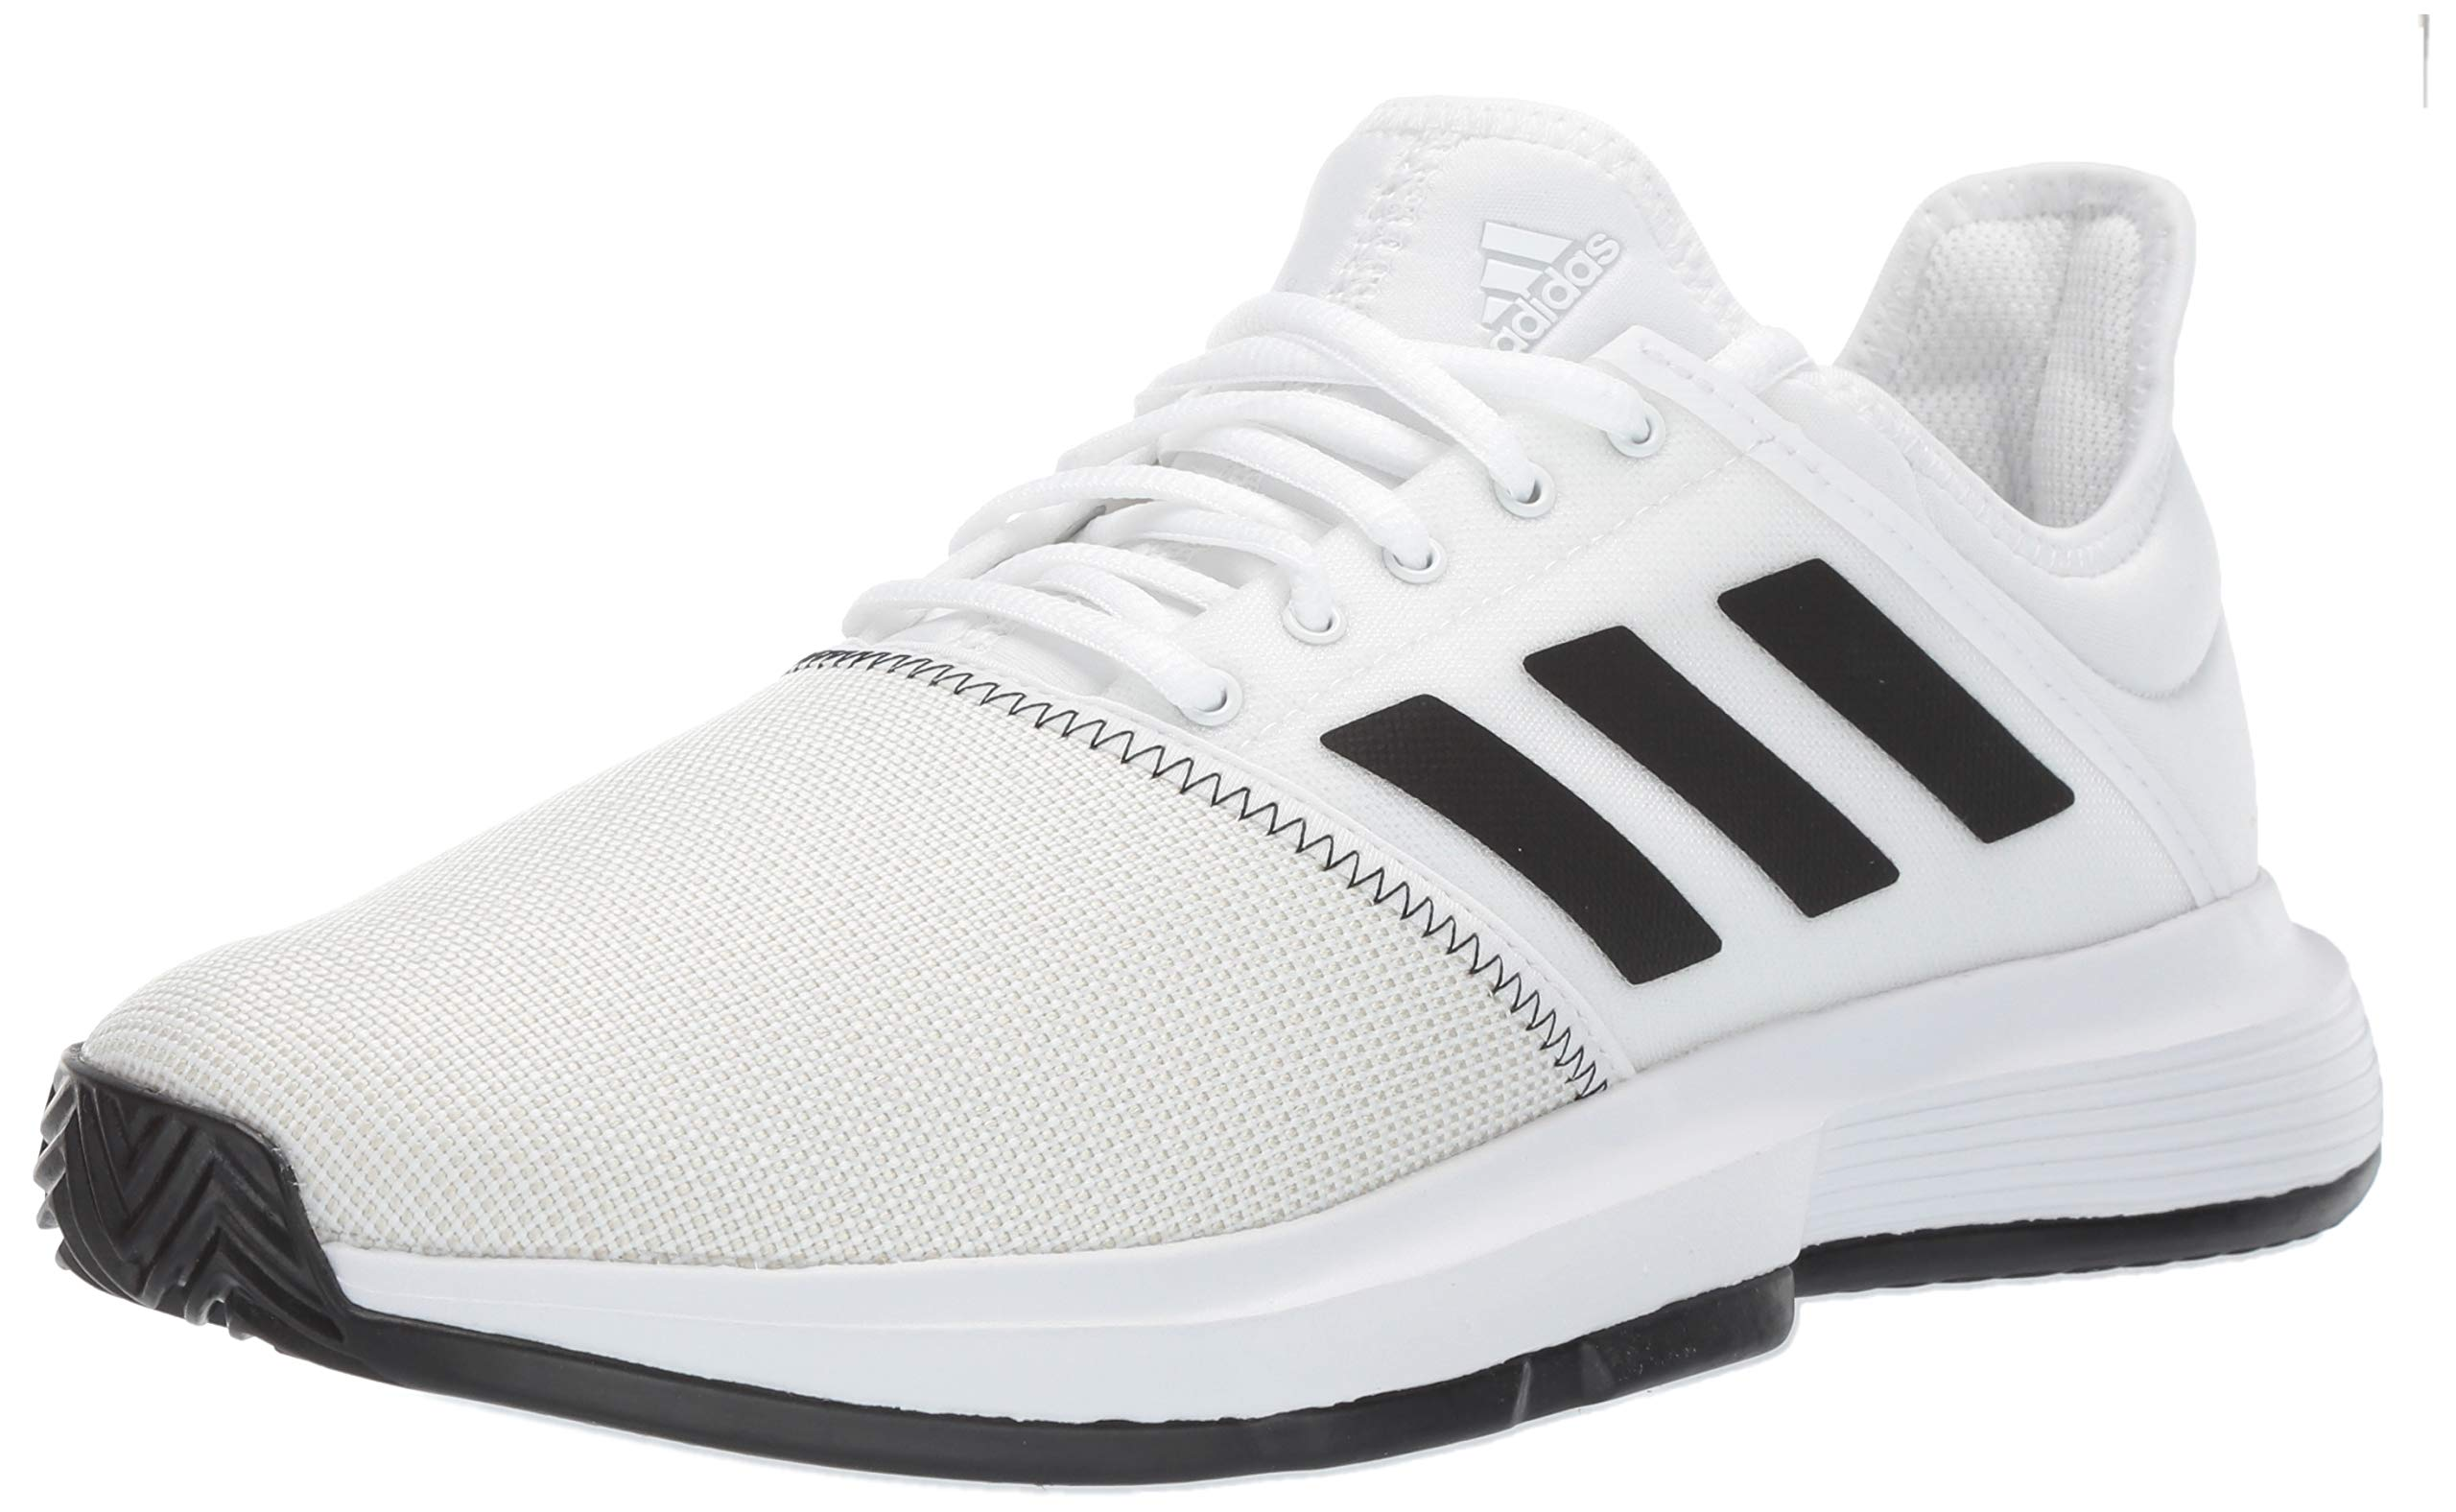 adidas Men's Gamecourt, White/Black/Grey 6.5 M US by adidas (Image #1)